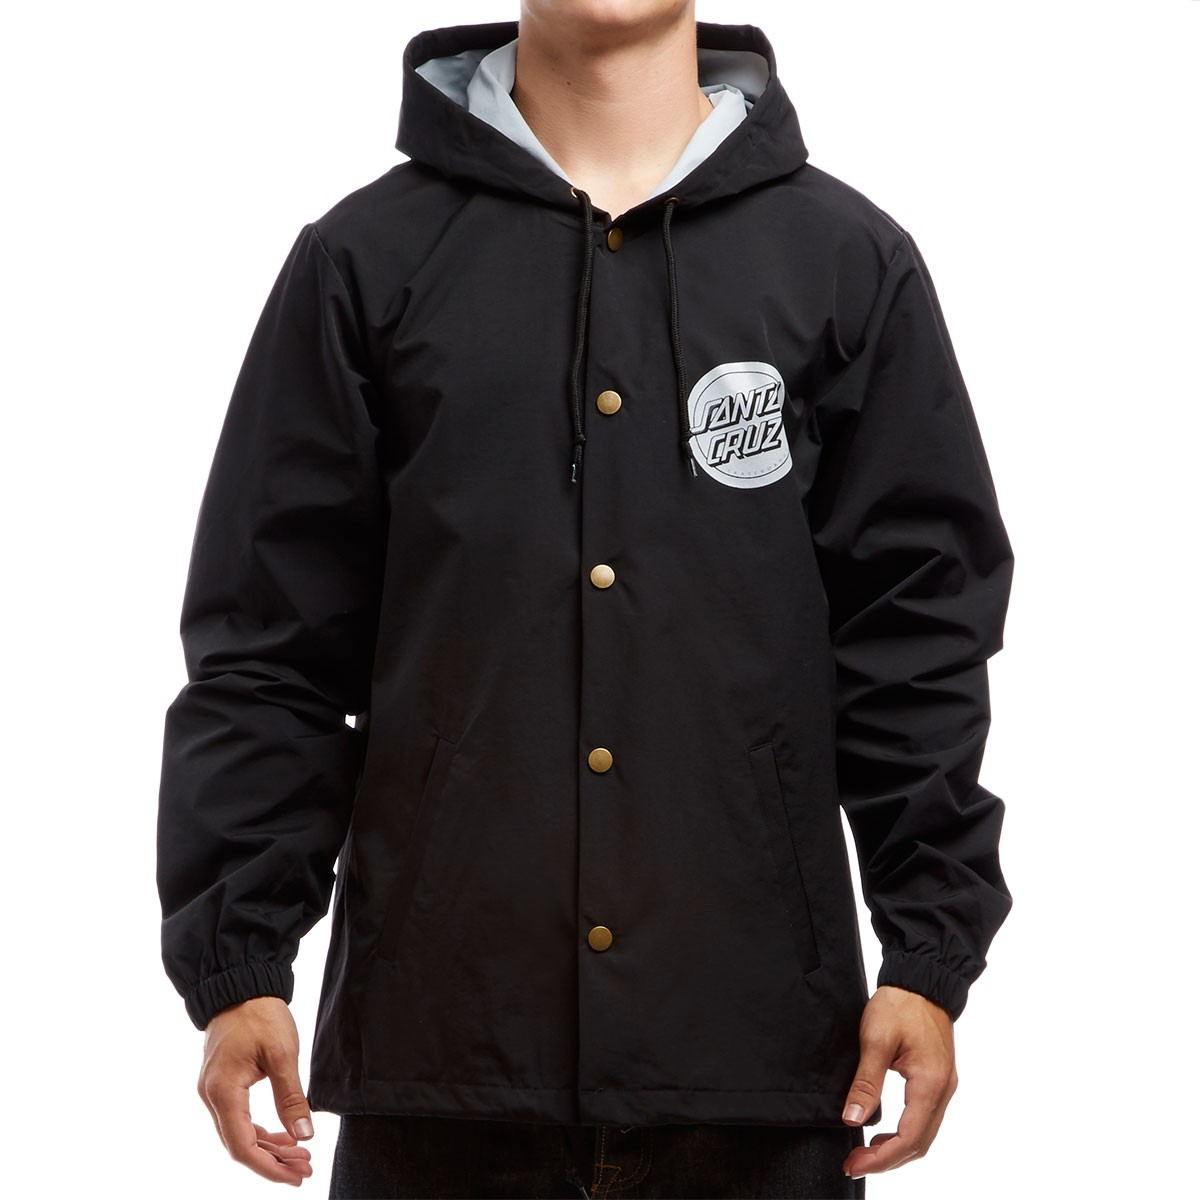 Santa Cruz Handled Hooded Windbreaker Jacket - Black